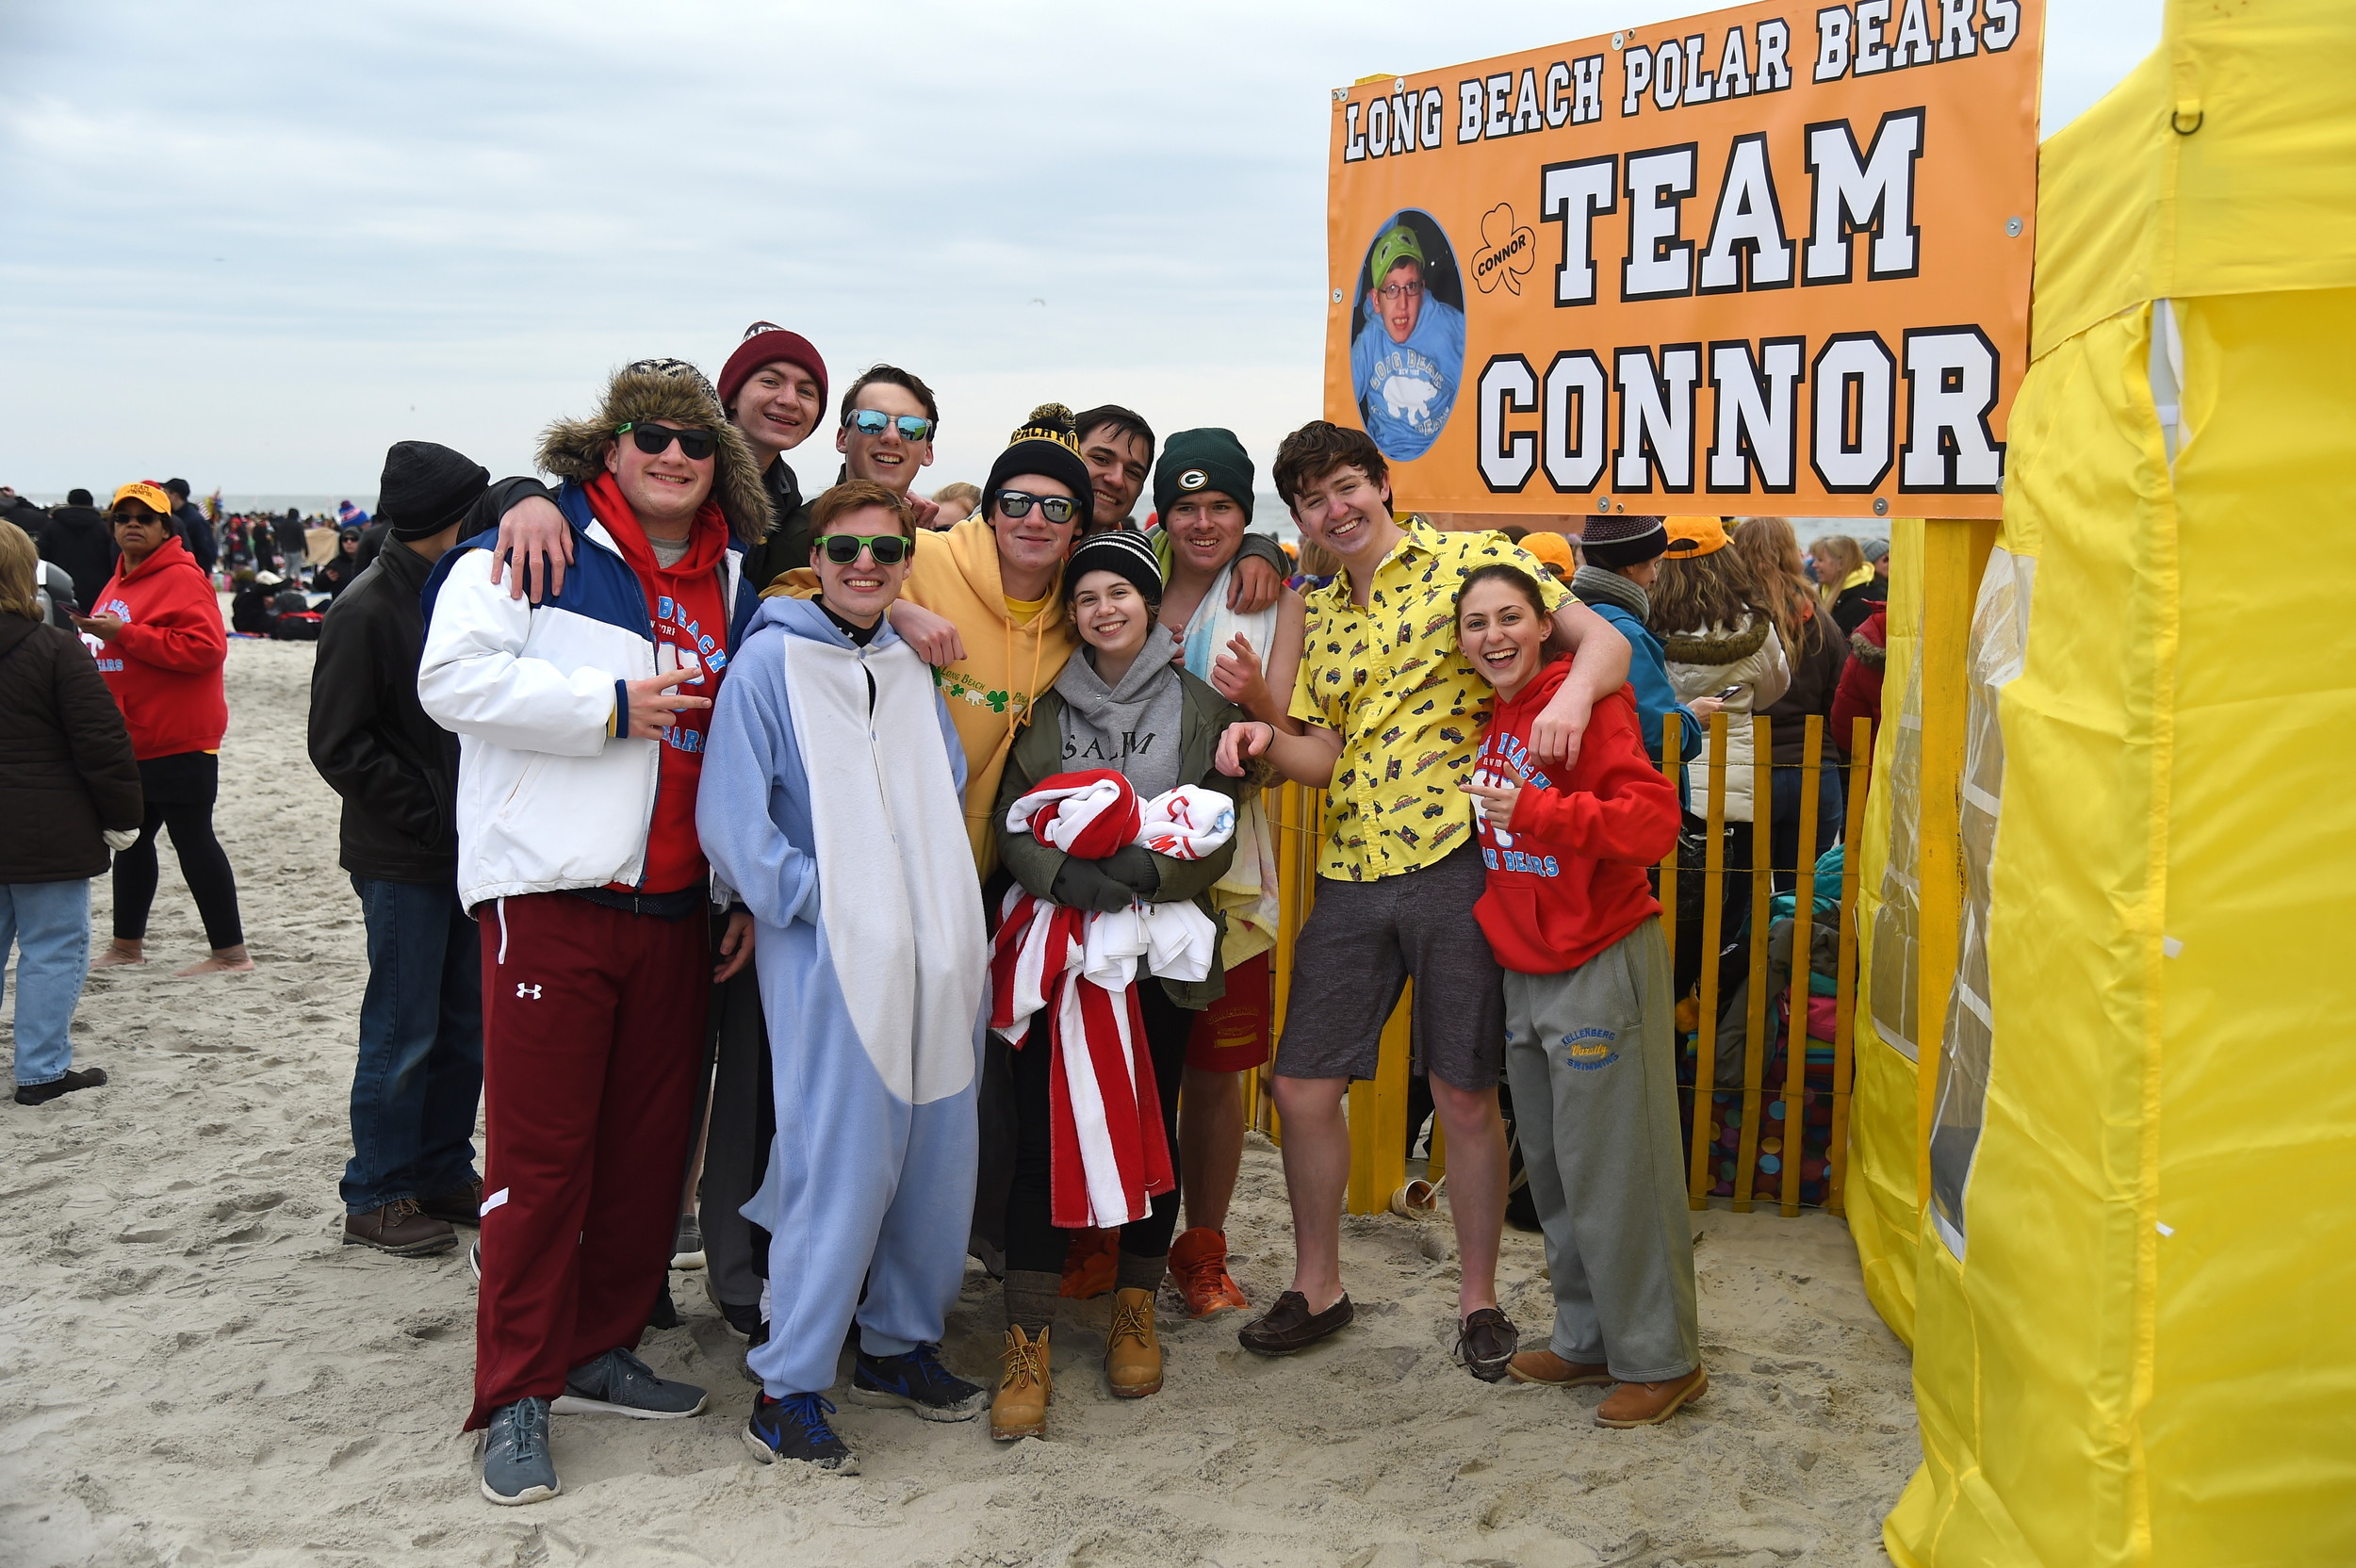 Members of Team Connor gathered outside their tent and celebrated the memory of Connor Troy, who received a wish from the foundation in 2014 but died shortly afterward.